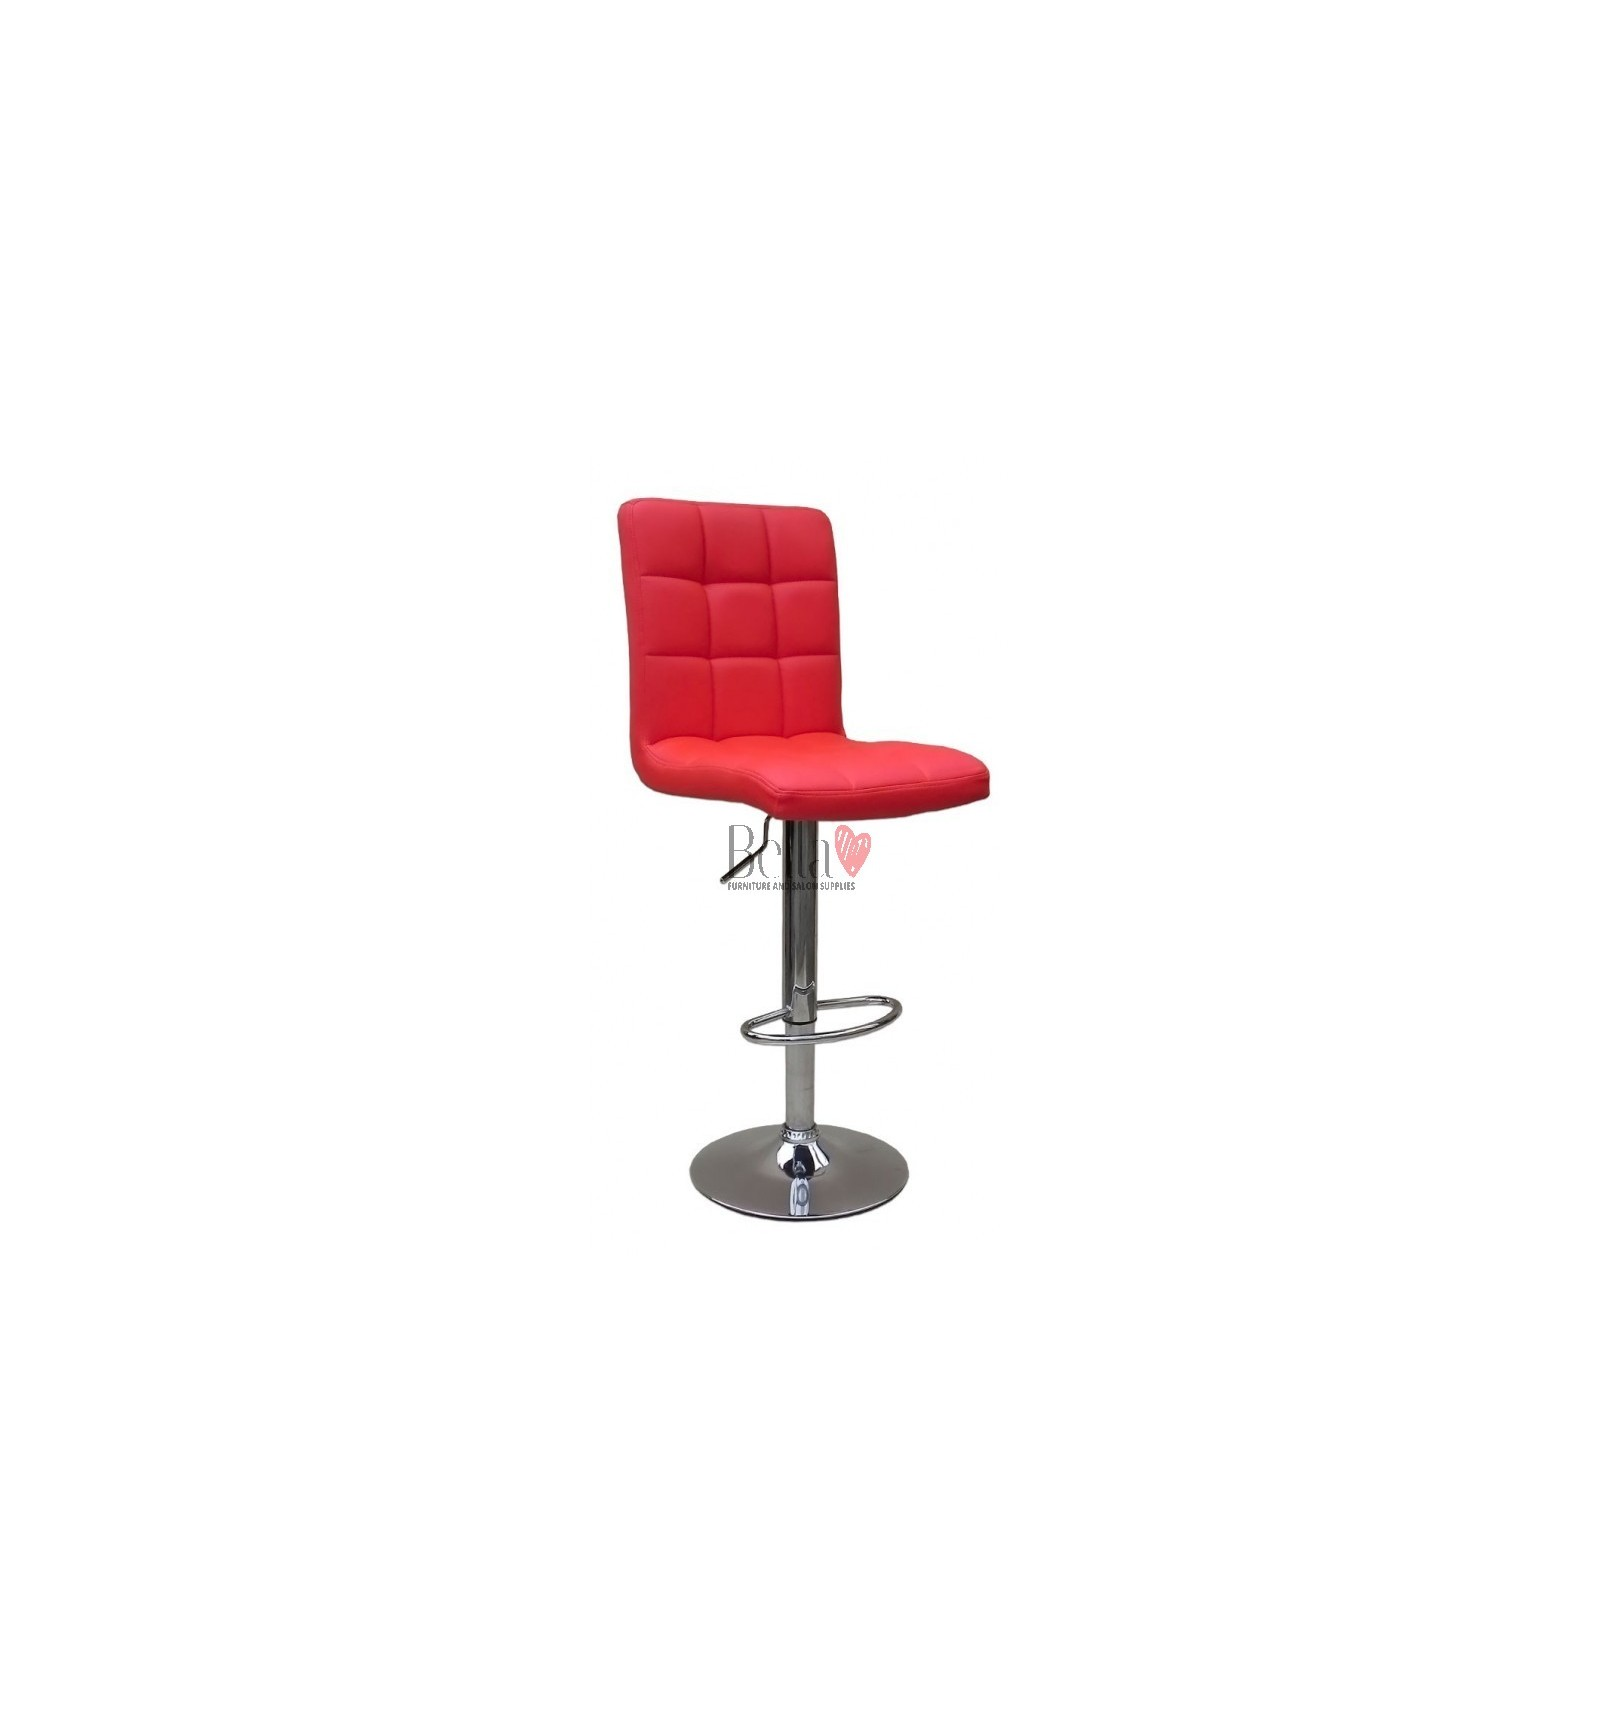 Red High Chair Red Stylish Makeup Chairs For Makeup Salon And Beauty